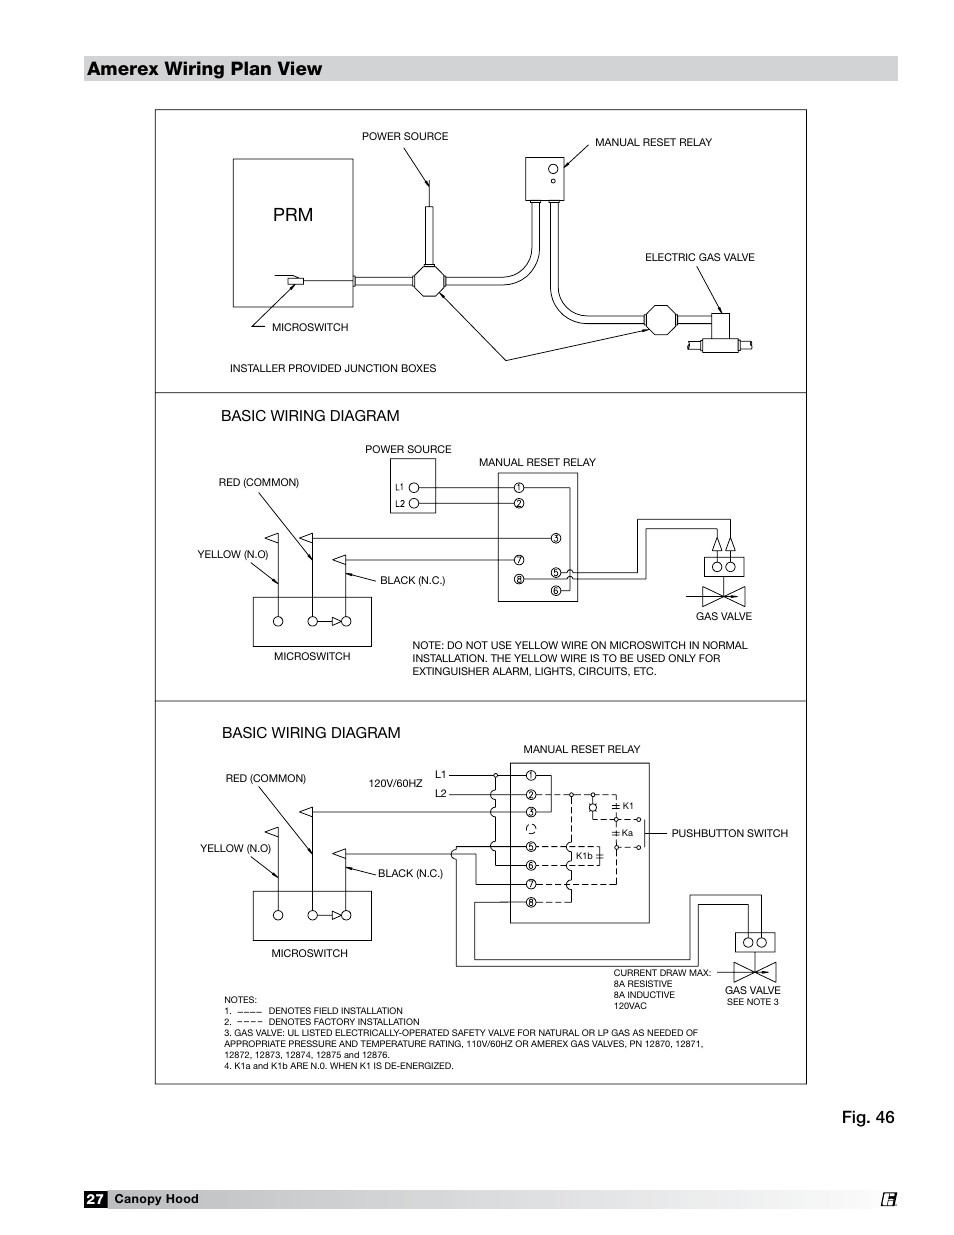 Kubota V2203 Wiring Diagram L2550 Kubota Injection Pump Diagram – L2550 Kubota Engine Diagram